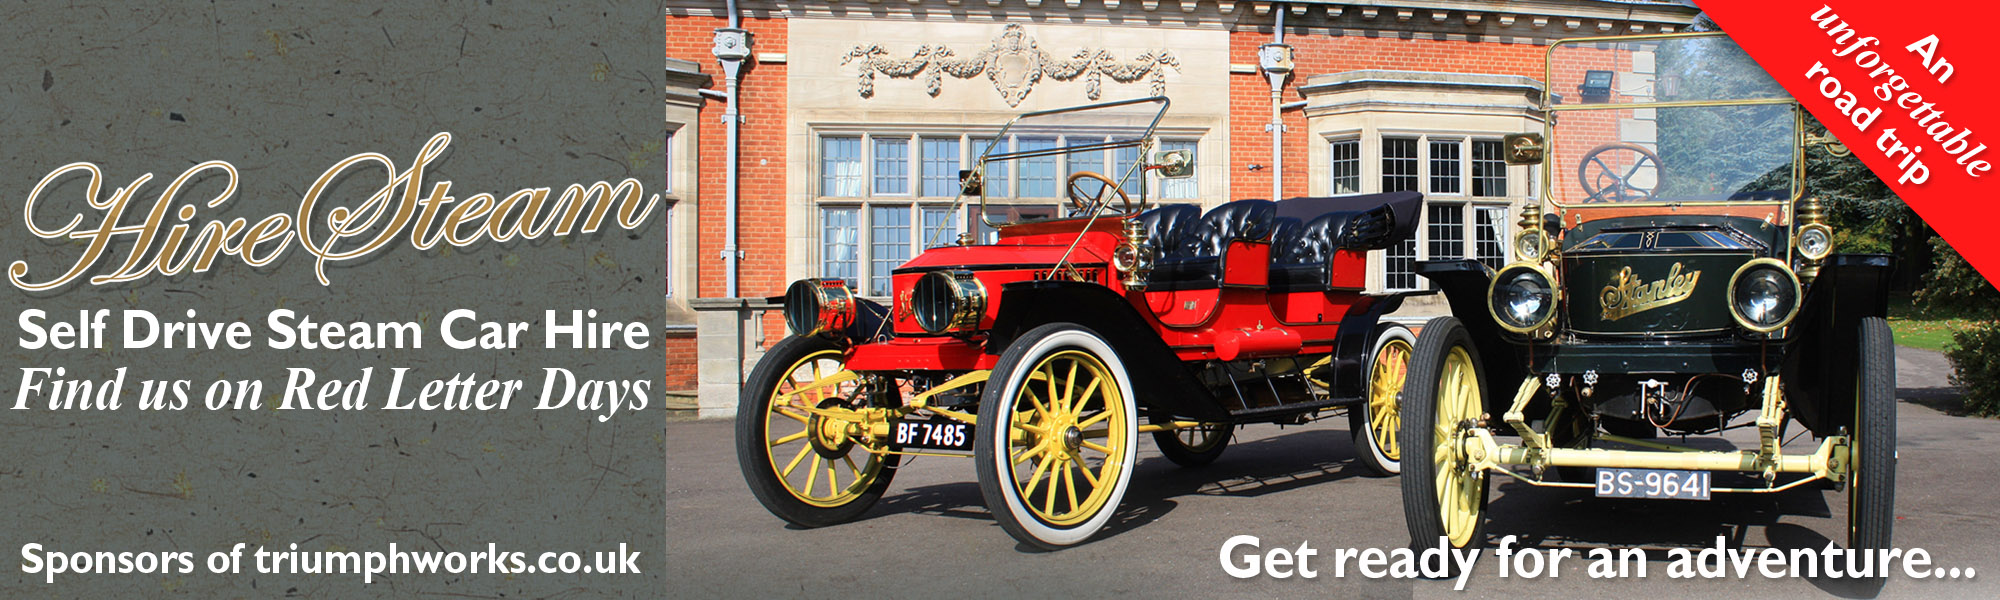 Hire Steam Stanley Steam Car Driving and Hire